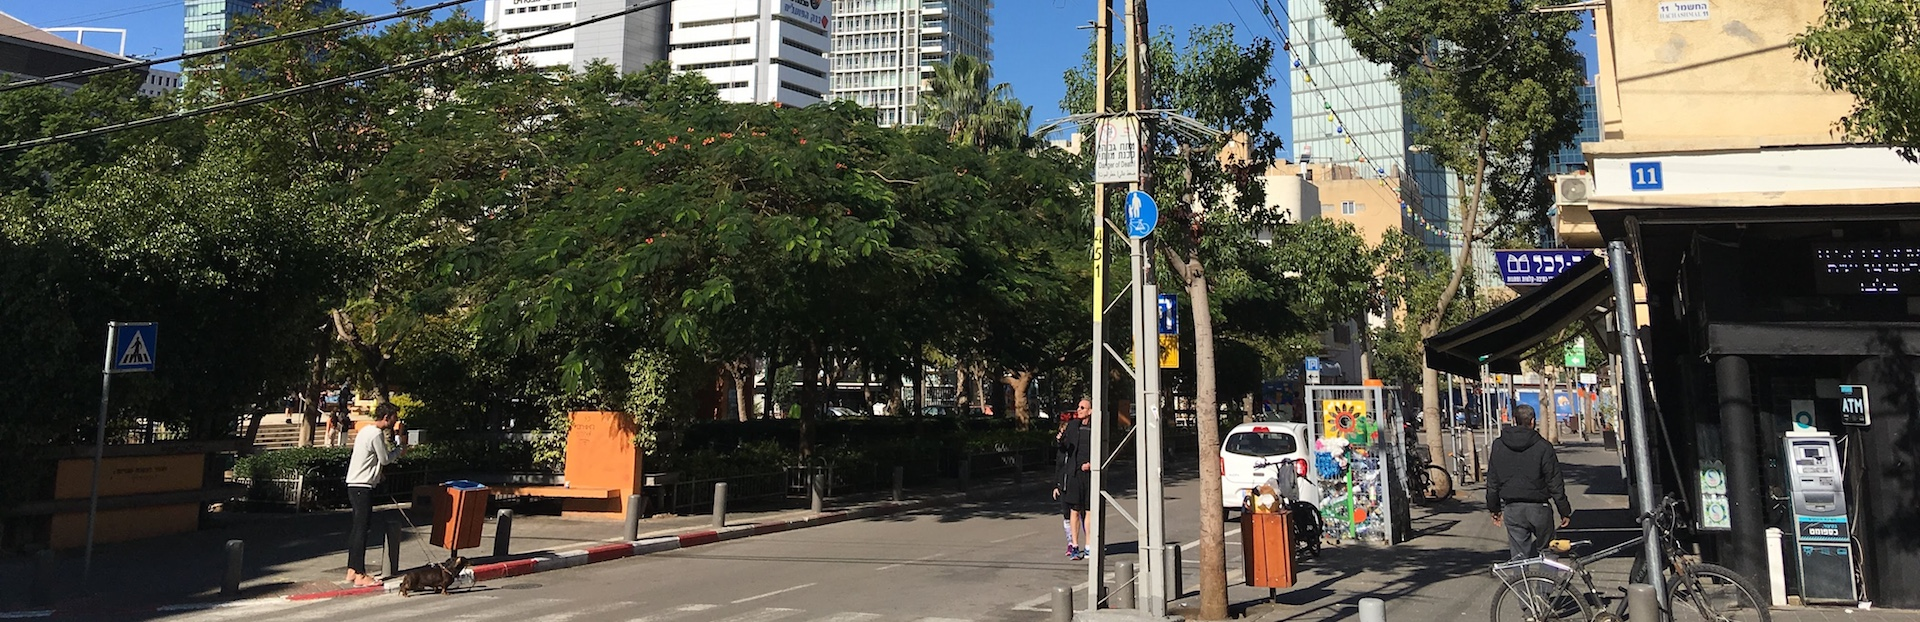 Tel Aviv audio tour: The Electrifying Story of Gan HaHashmal and Its Architecture